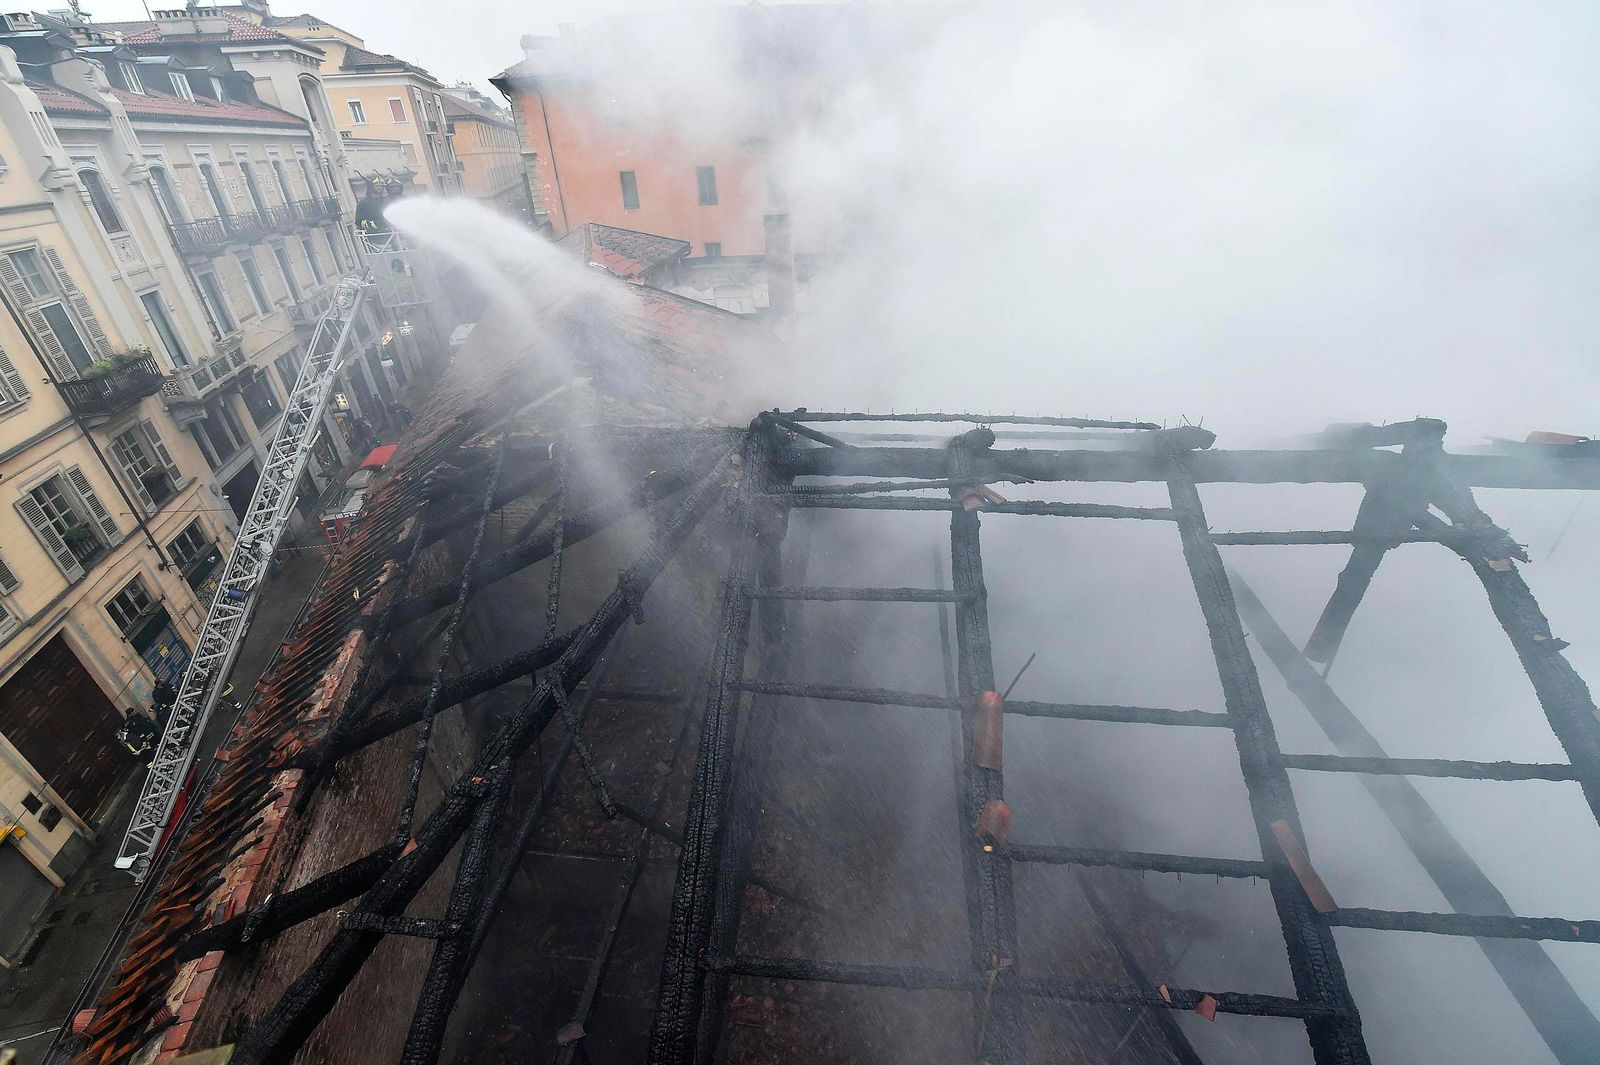 Firefighters put out a fire on the rooftop of the Cavallerizza Reale, in Turin, northern Italy, Monday, Oct. 21, 2019.{ } (Alessandro Di Marco/ANSA via AP)